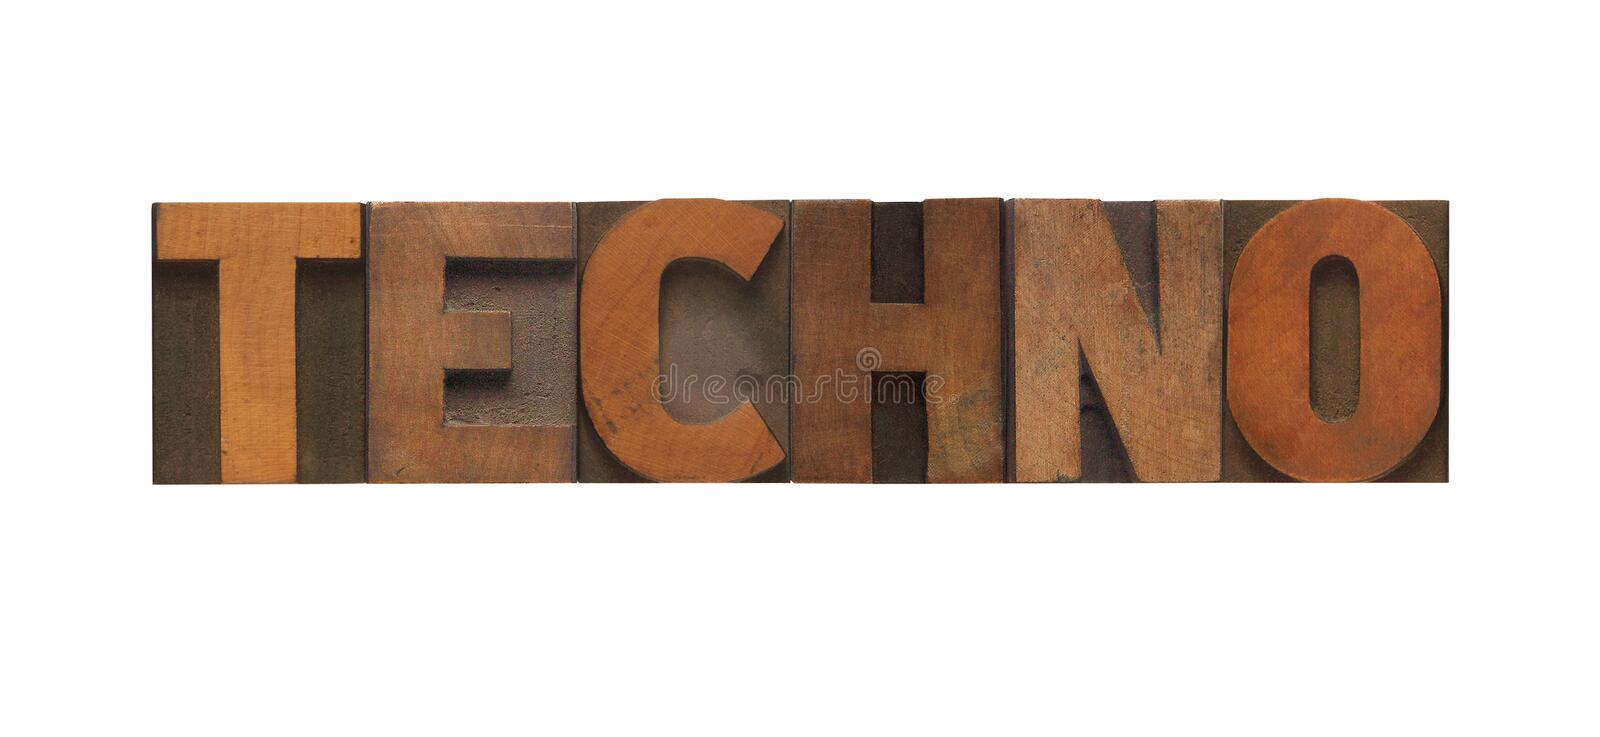 Techno. The word techno in old letterpress wood type royalty free stock photography